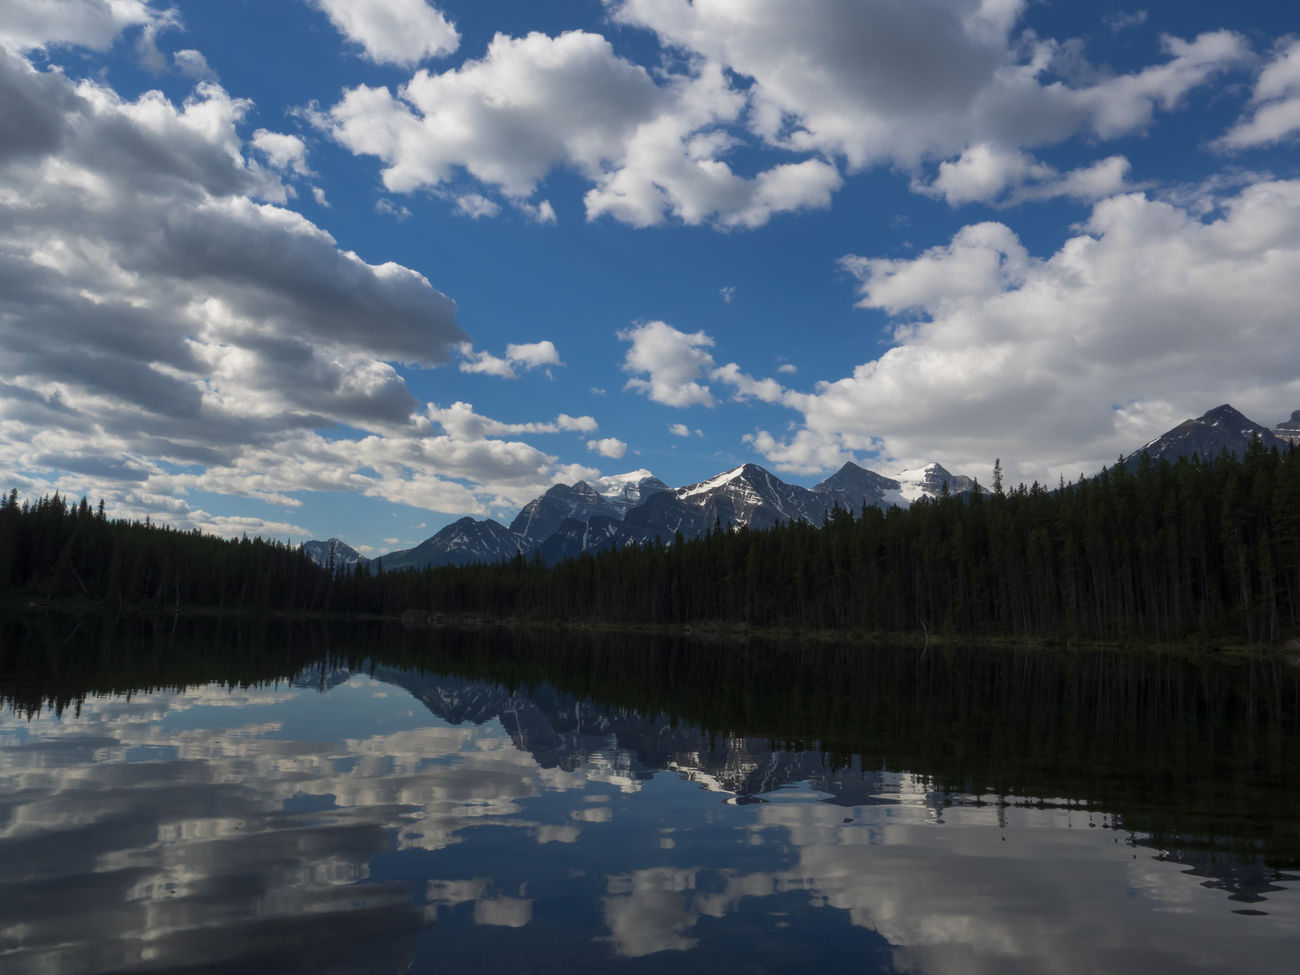 Alberta Beauty In Nature Canada Cloud - Sky Day Lake Landscape Lanscape Mirror Lake Mountain Mountain Range National Park Nature Nature Nature Photography Nature_collection No People Outdoors Reflection Scenics Sky Tranquil Scene Tree Water Waterfront